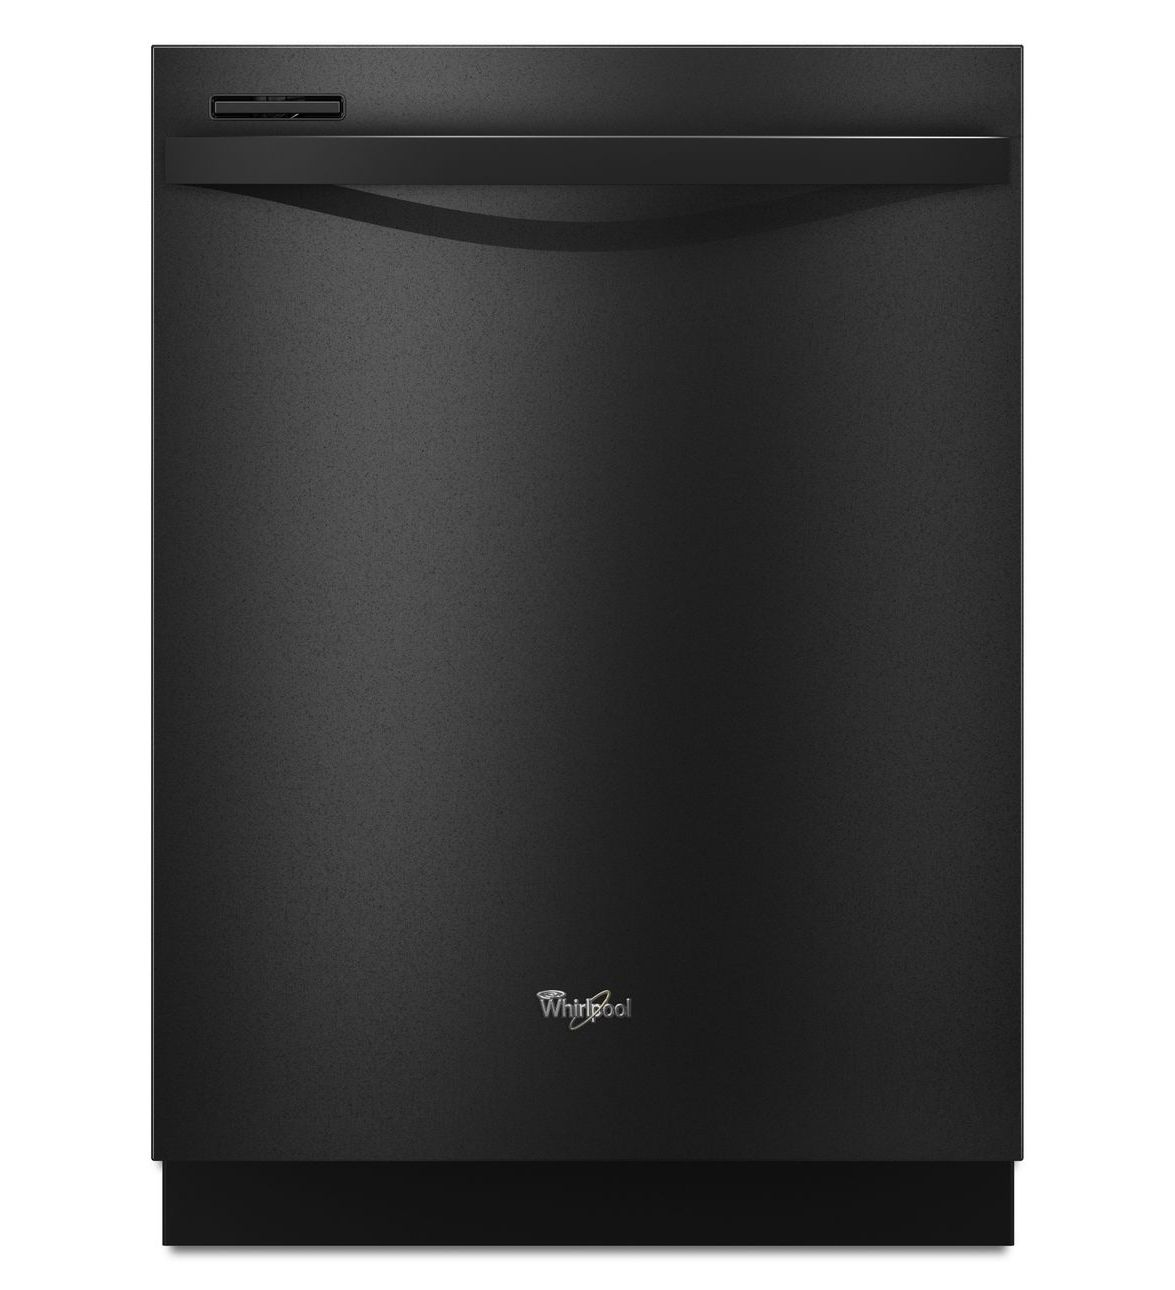 """Whirlpool WDT710PAYB Gold 24"""" Fully Integrated Dishwasher"""